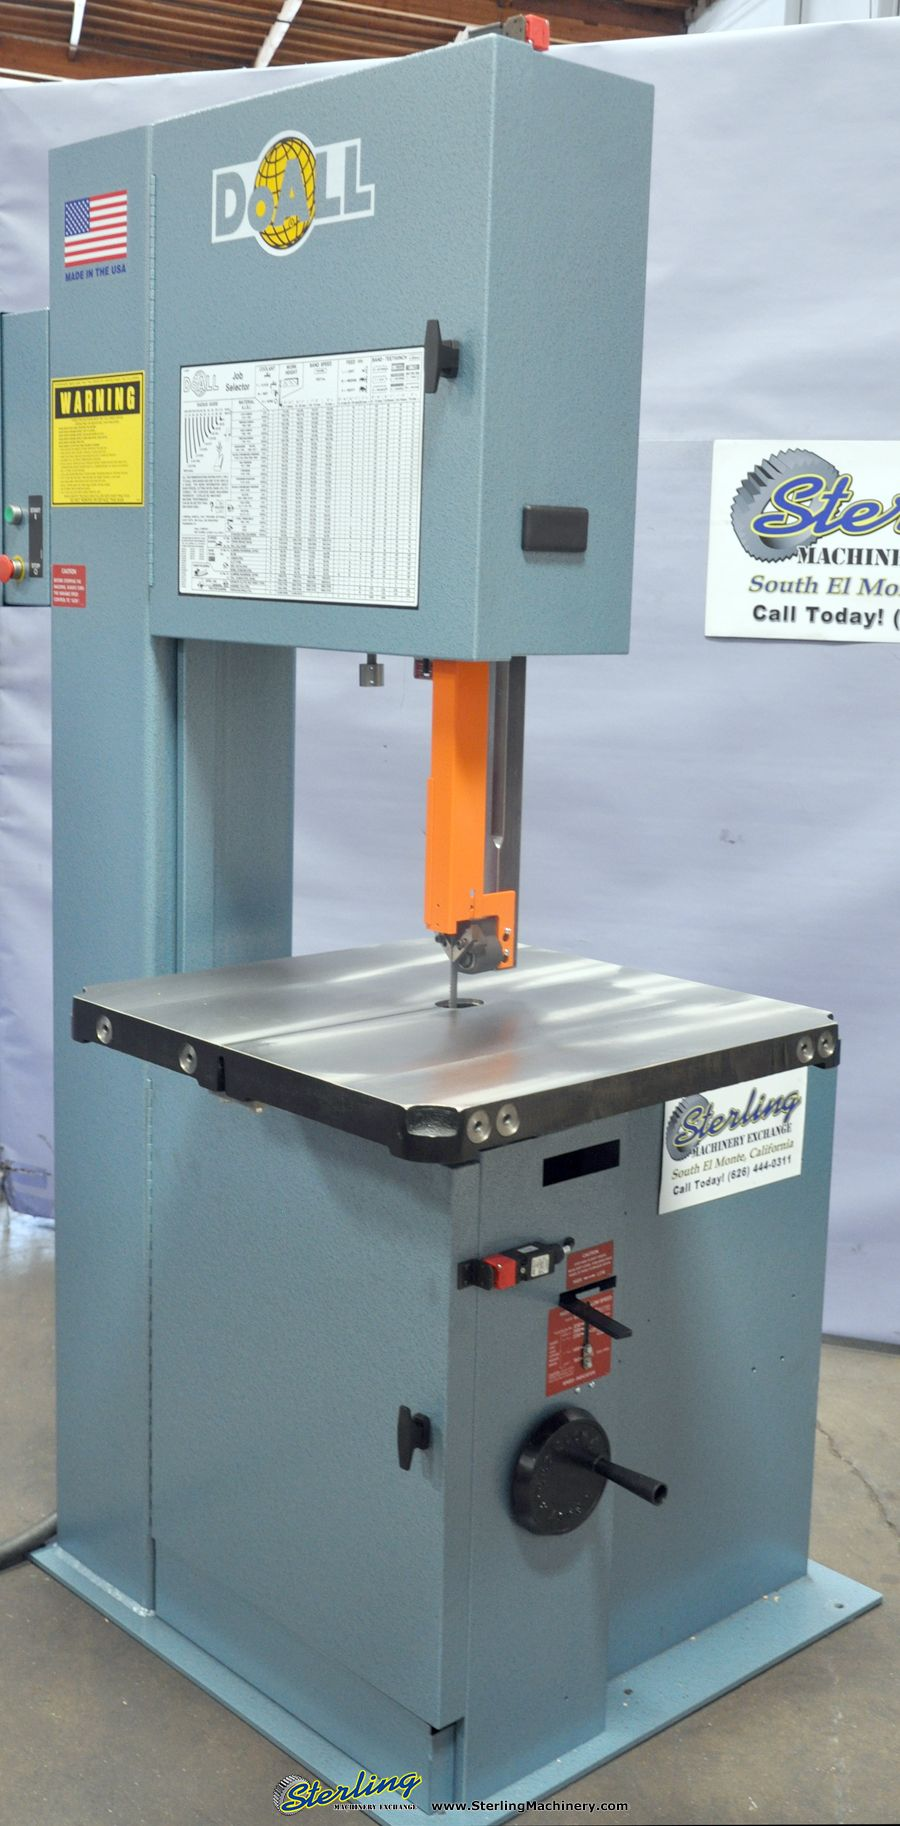 hight resolution of 20 brand new doall vertical contour bandsaw mdl 2013 v high low transmission made in the u s a sm2013v